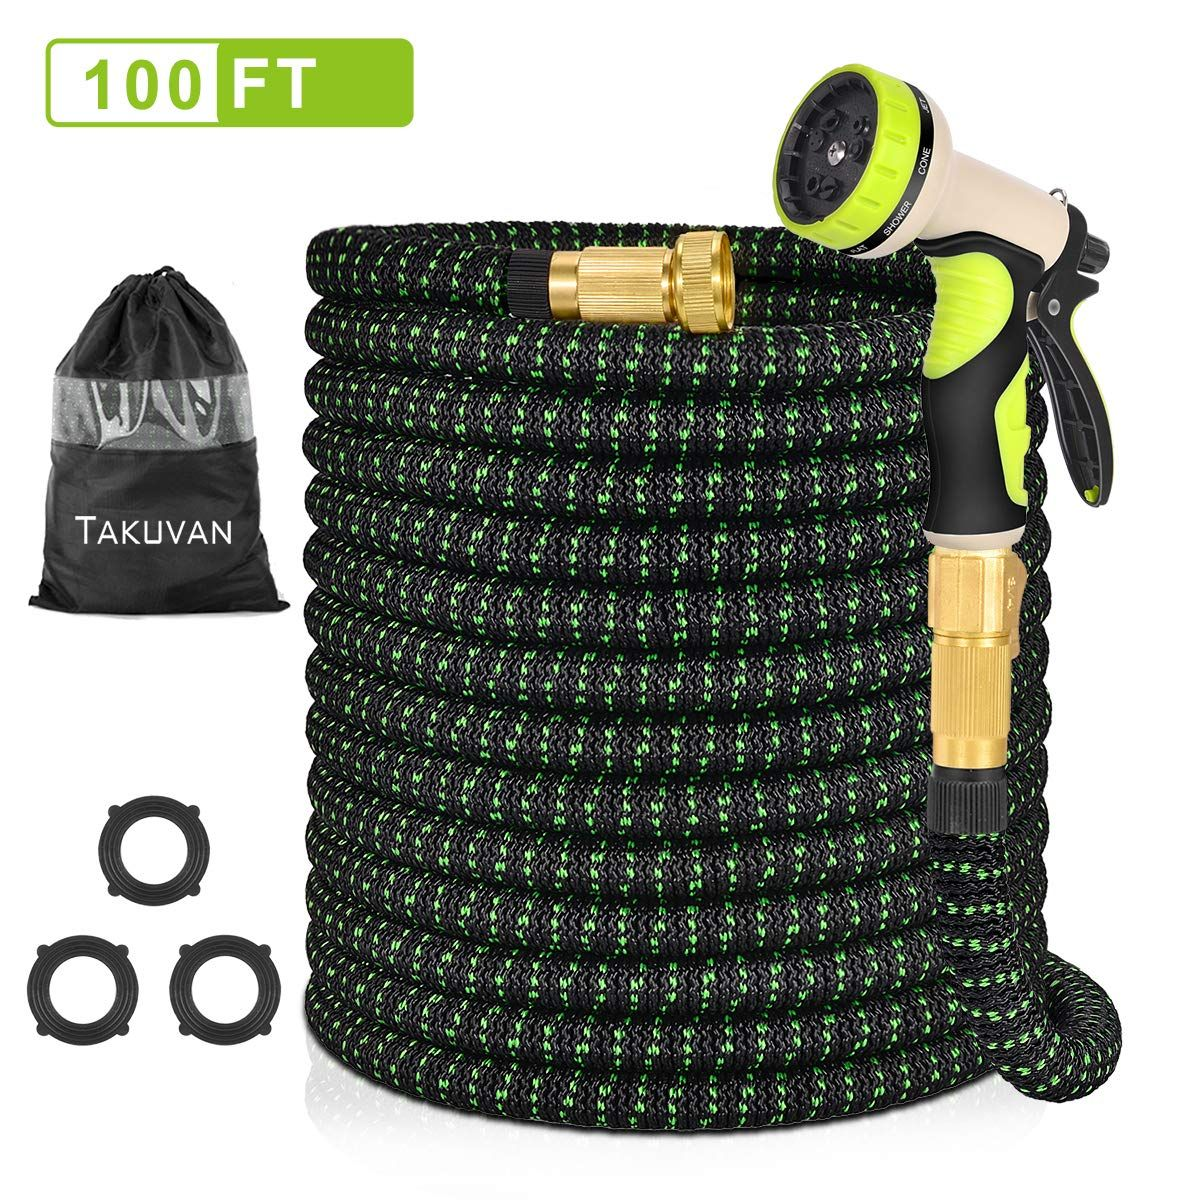 Takuvan 100ft Expandable Garden Hose 100 Feet Upgraded Water Hose Durable Flexible Hose With 9 Spray Patterns Hose Nozzl Water Hose Garden Hose Spray Pattern